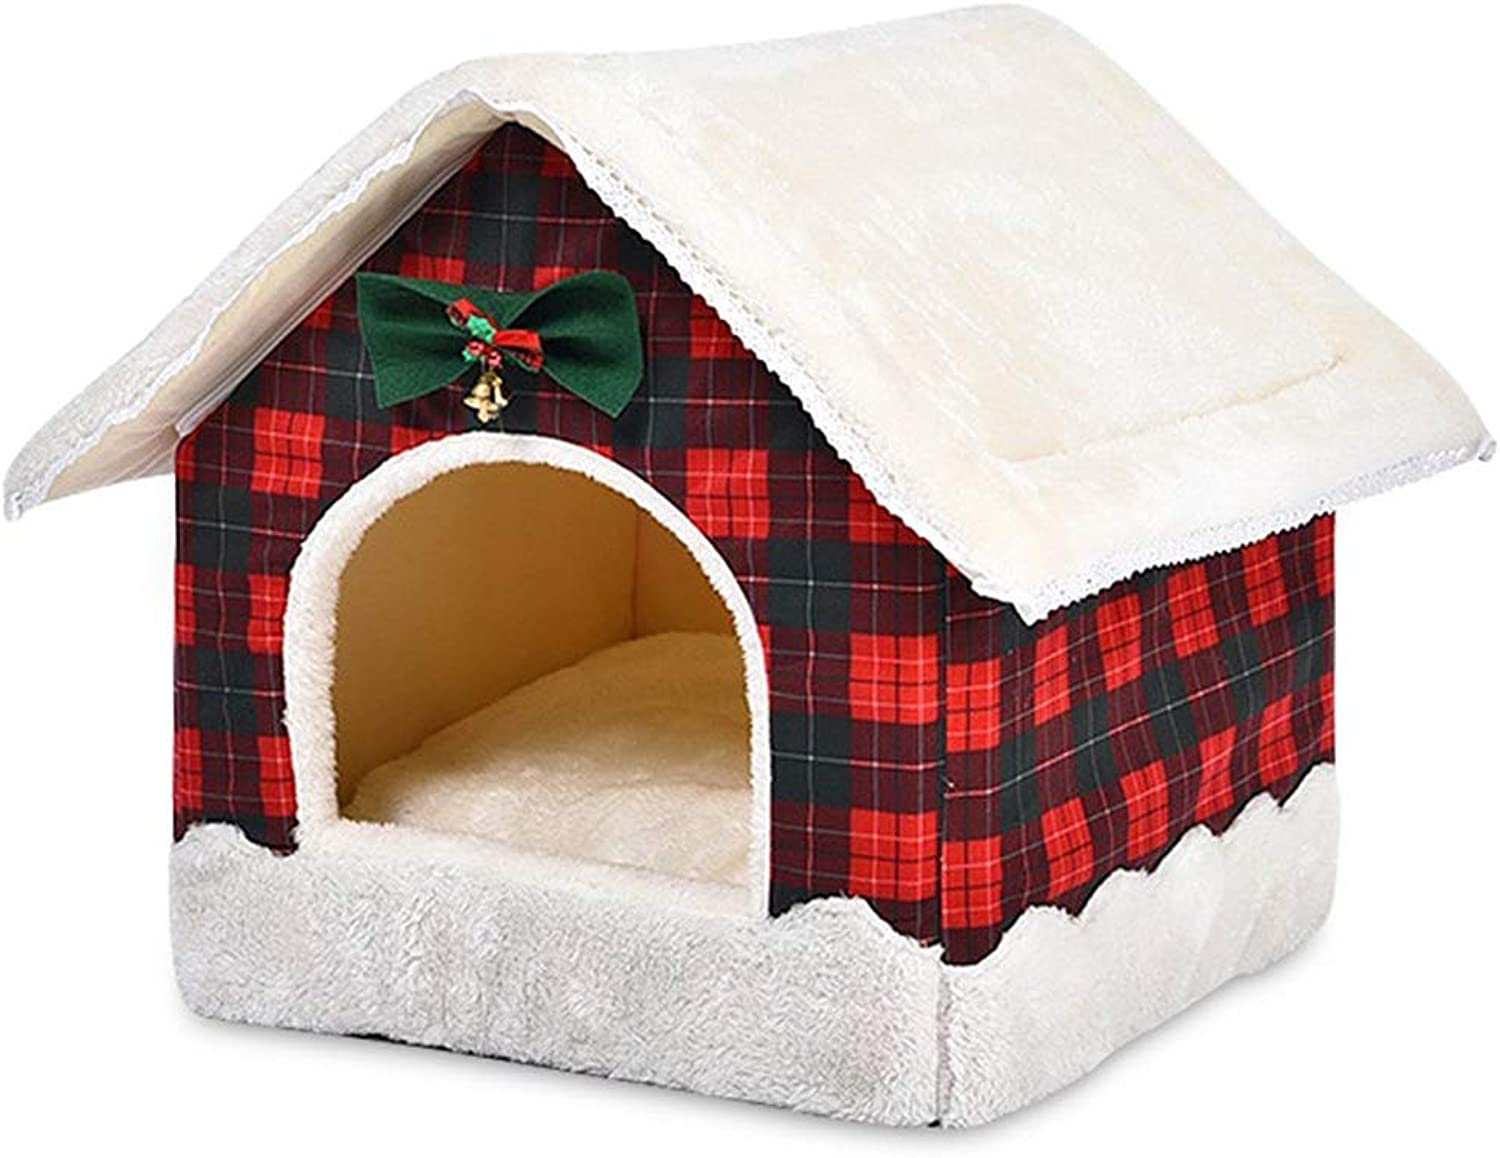 Byx Cat Nest Four Seasons General Puppy Dog Winter Kennel Winter Warm Pet Cat Supplies Small Dog Teddy Keji Bomei Closed Yurt Removable Washable Autumn Winter Creative Egg Tart House New Year House O